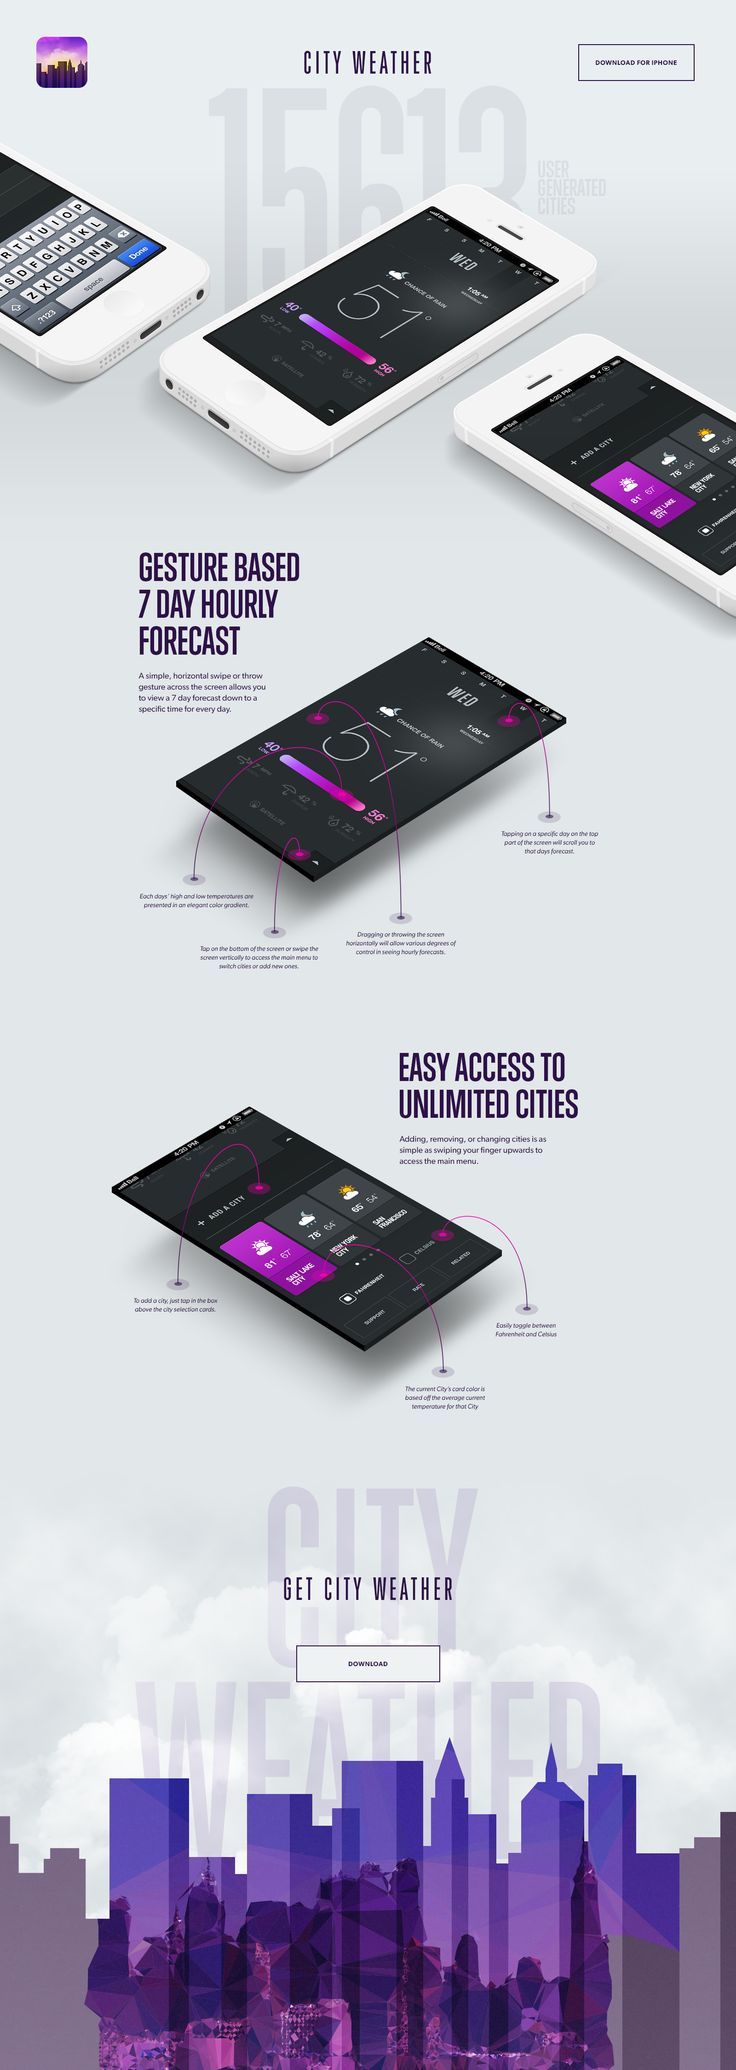 Dribbble - 00_comp.png by Rally Interactive (via Ben Cline)